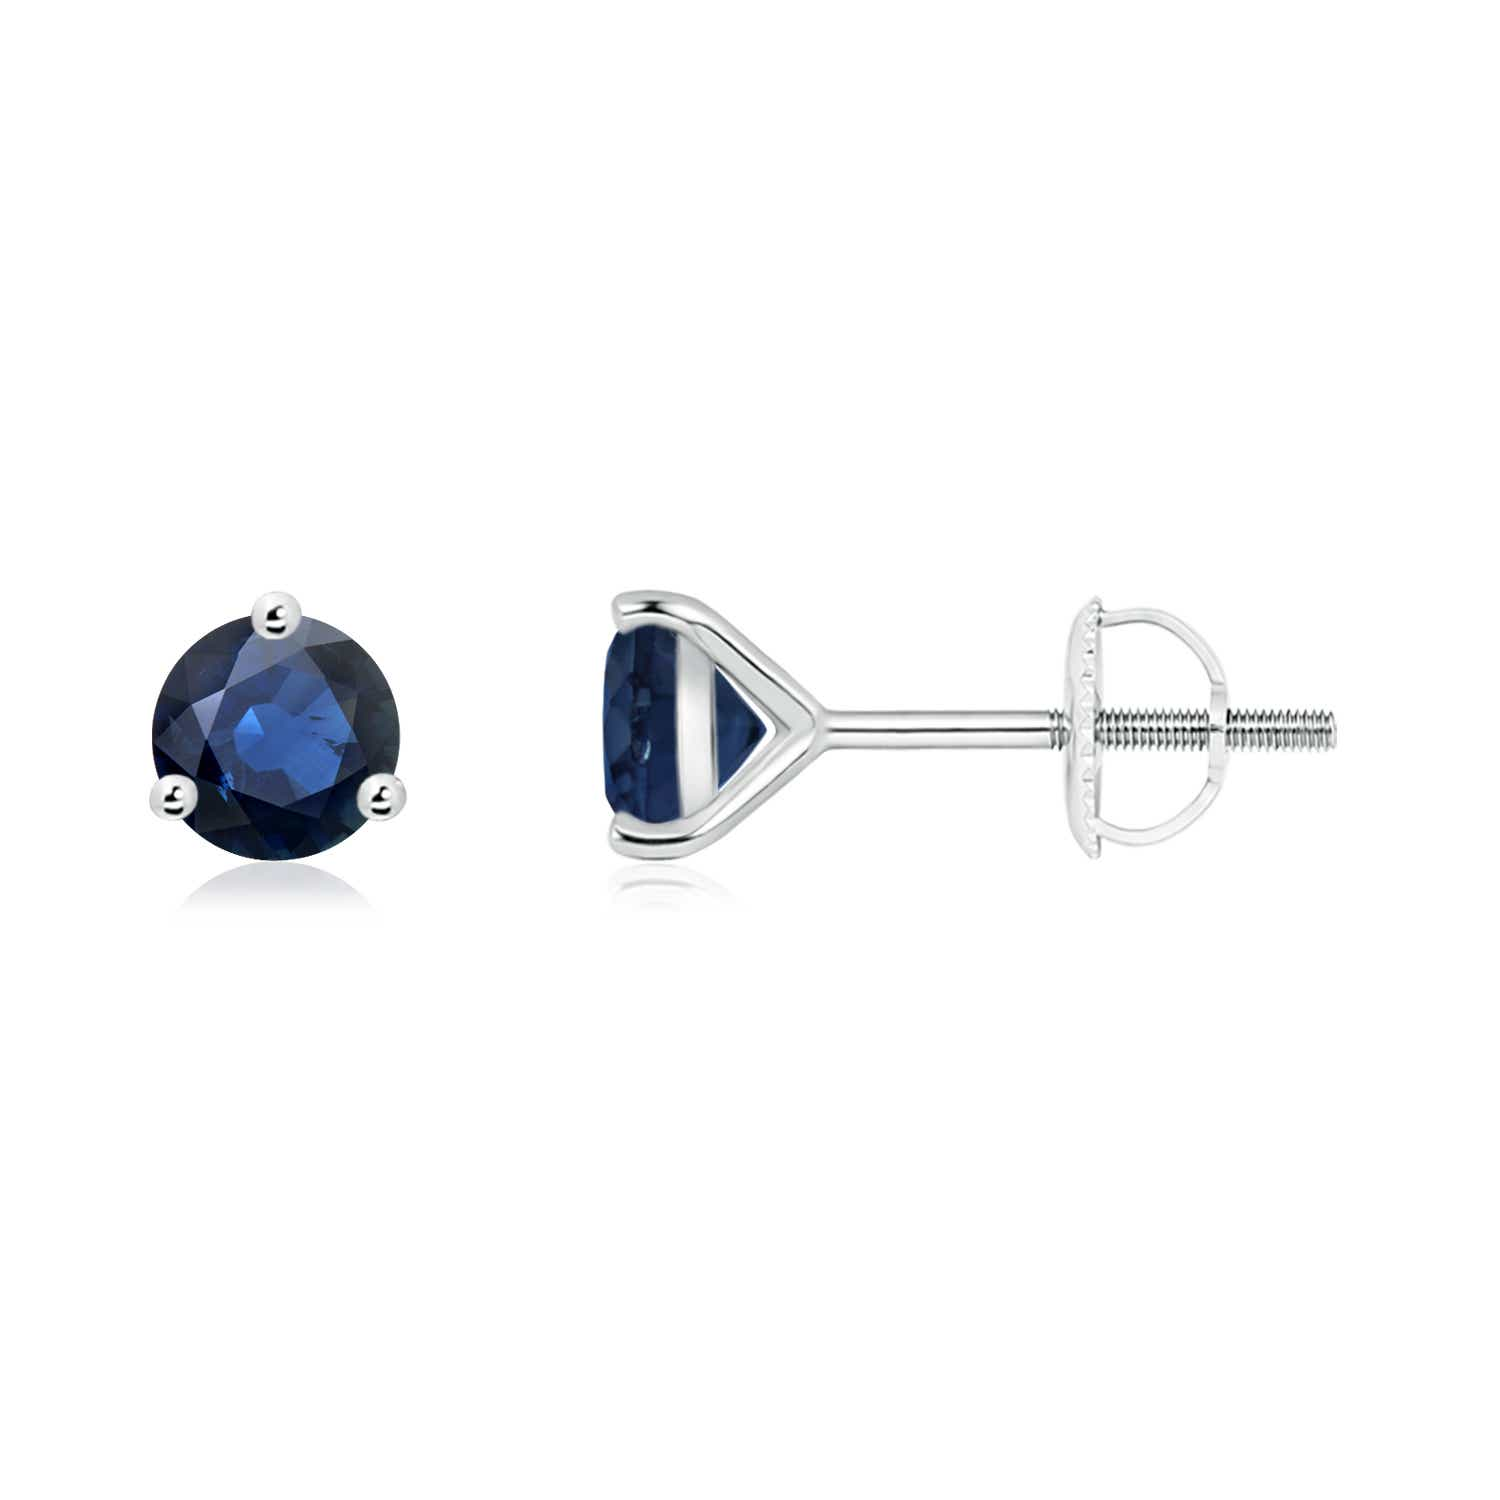 Angara 5mm Blue Sapphire Stud Earrings in 14k Rose Gold 3PR2uW8DW